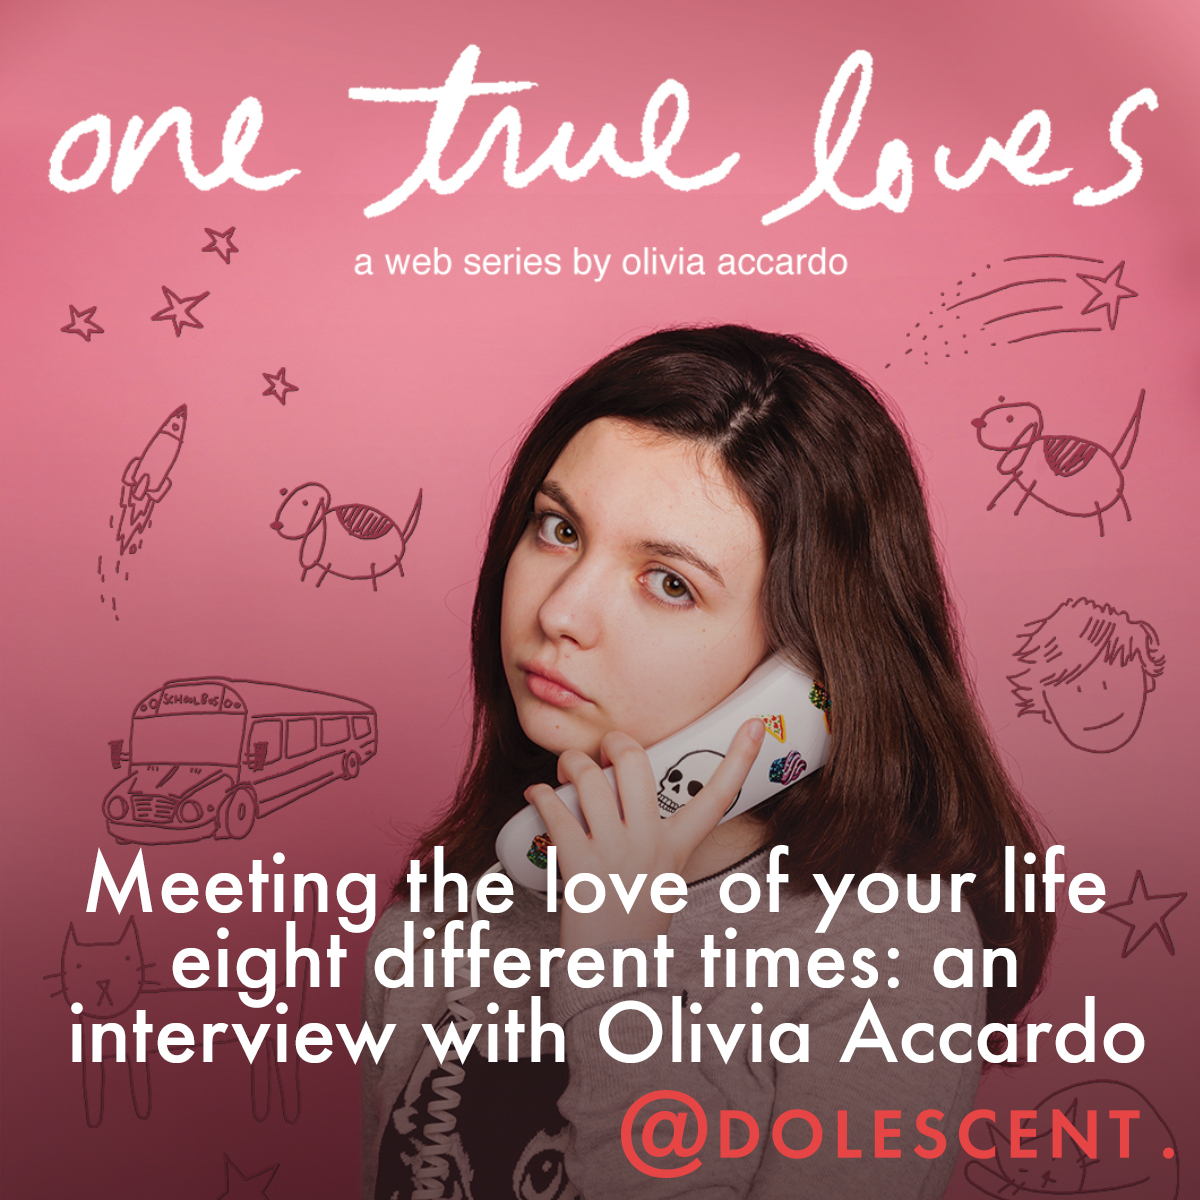 Meeting the love of your life eight different times: an interview with Olivia Accardo -